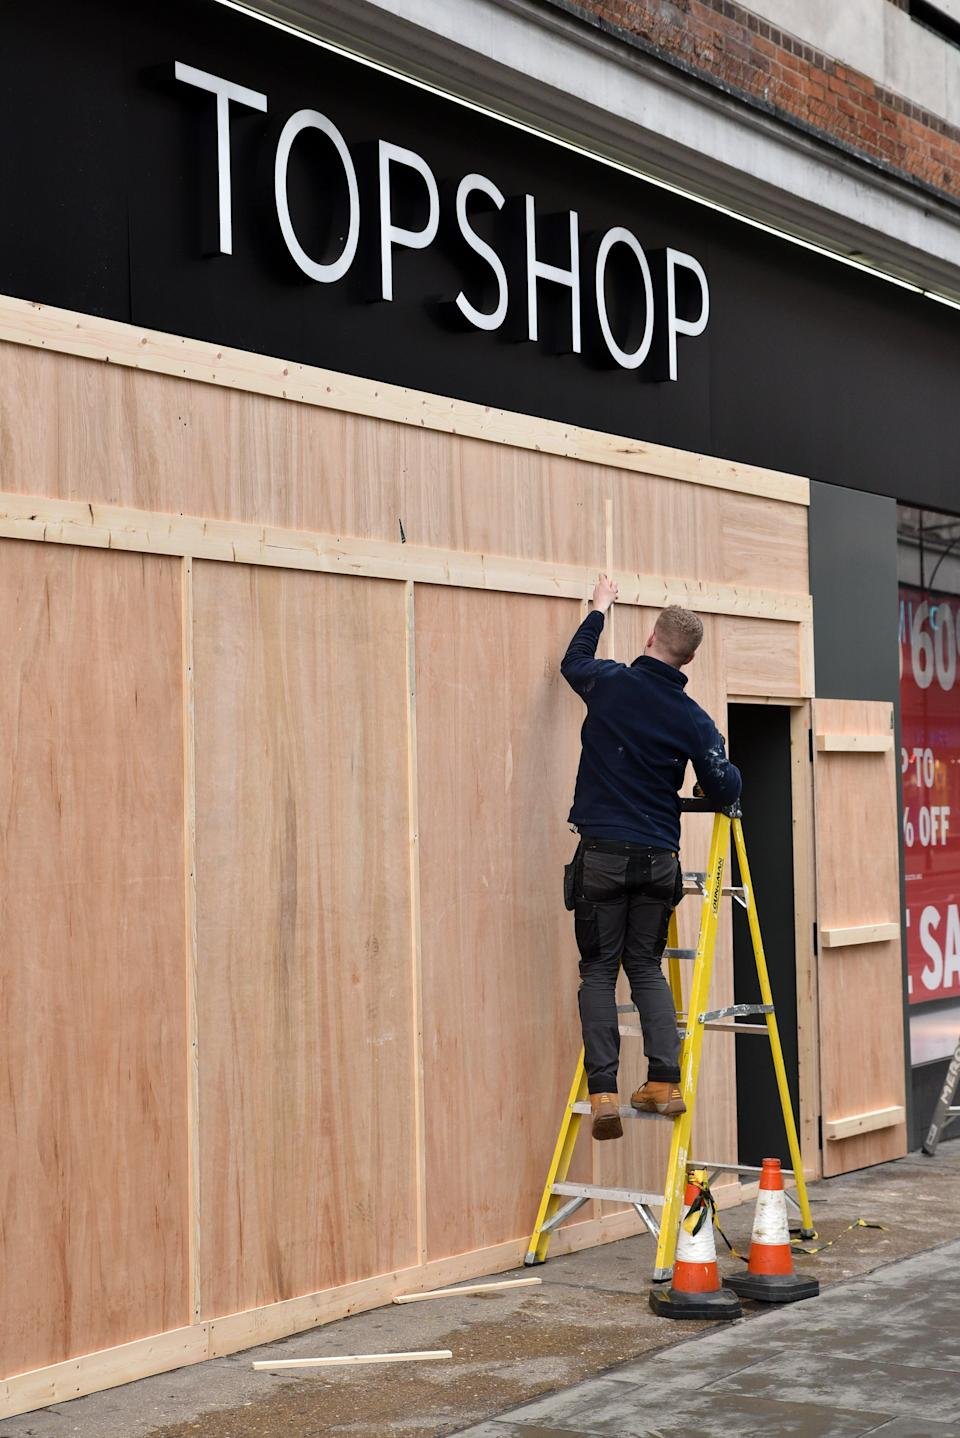 Topshop has disappeared from the high streetBarcroft Media via Getty Images